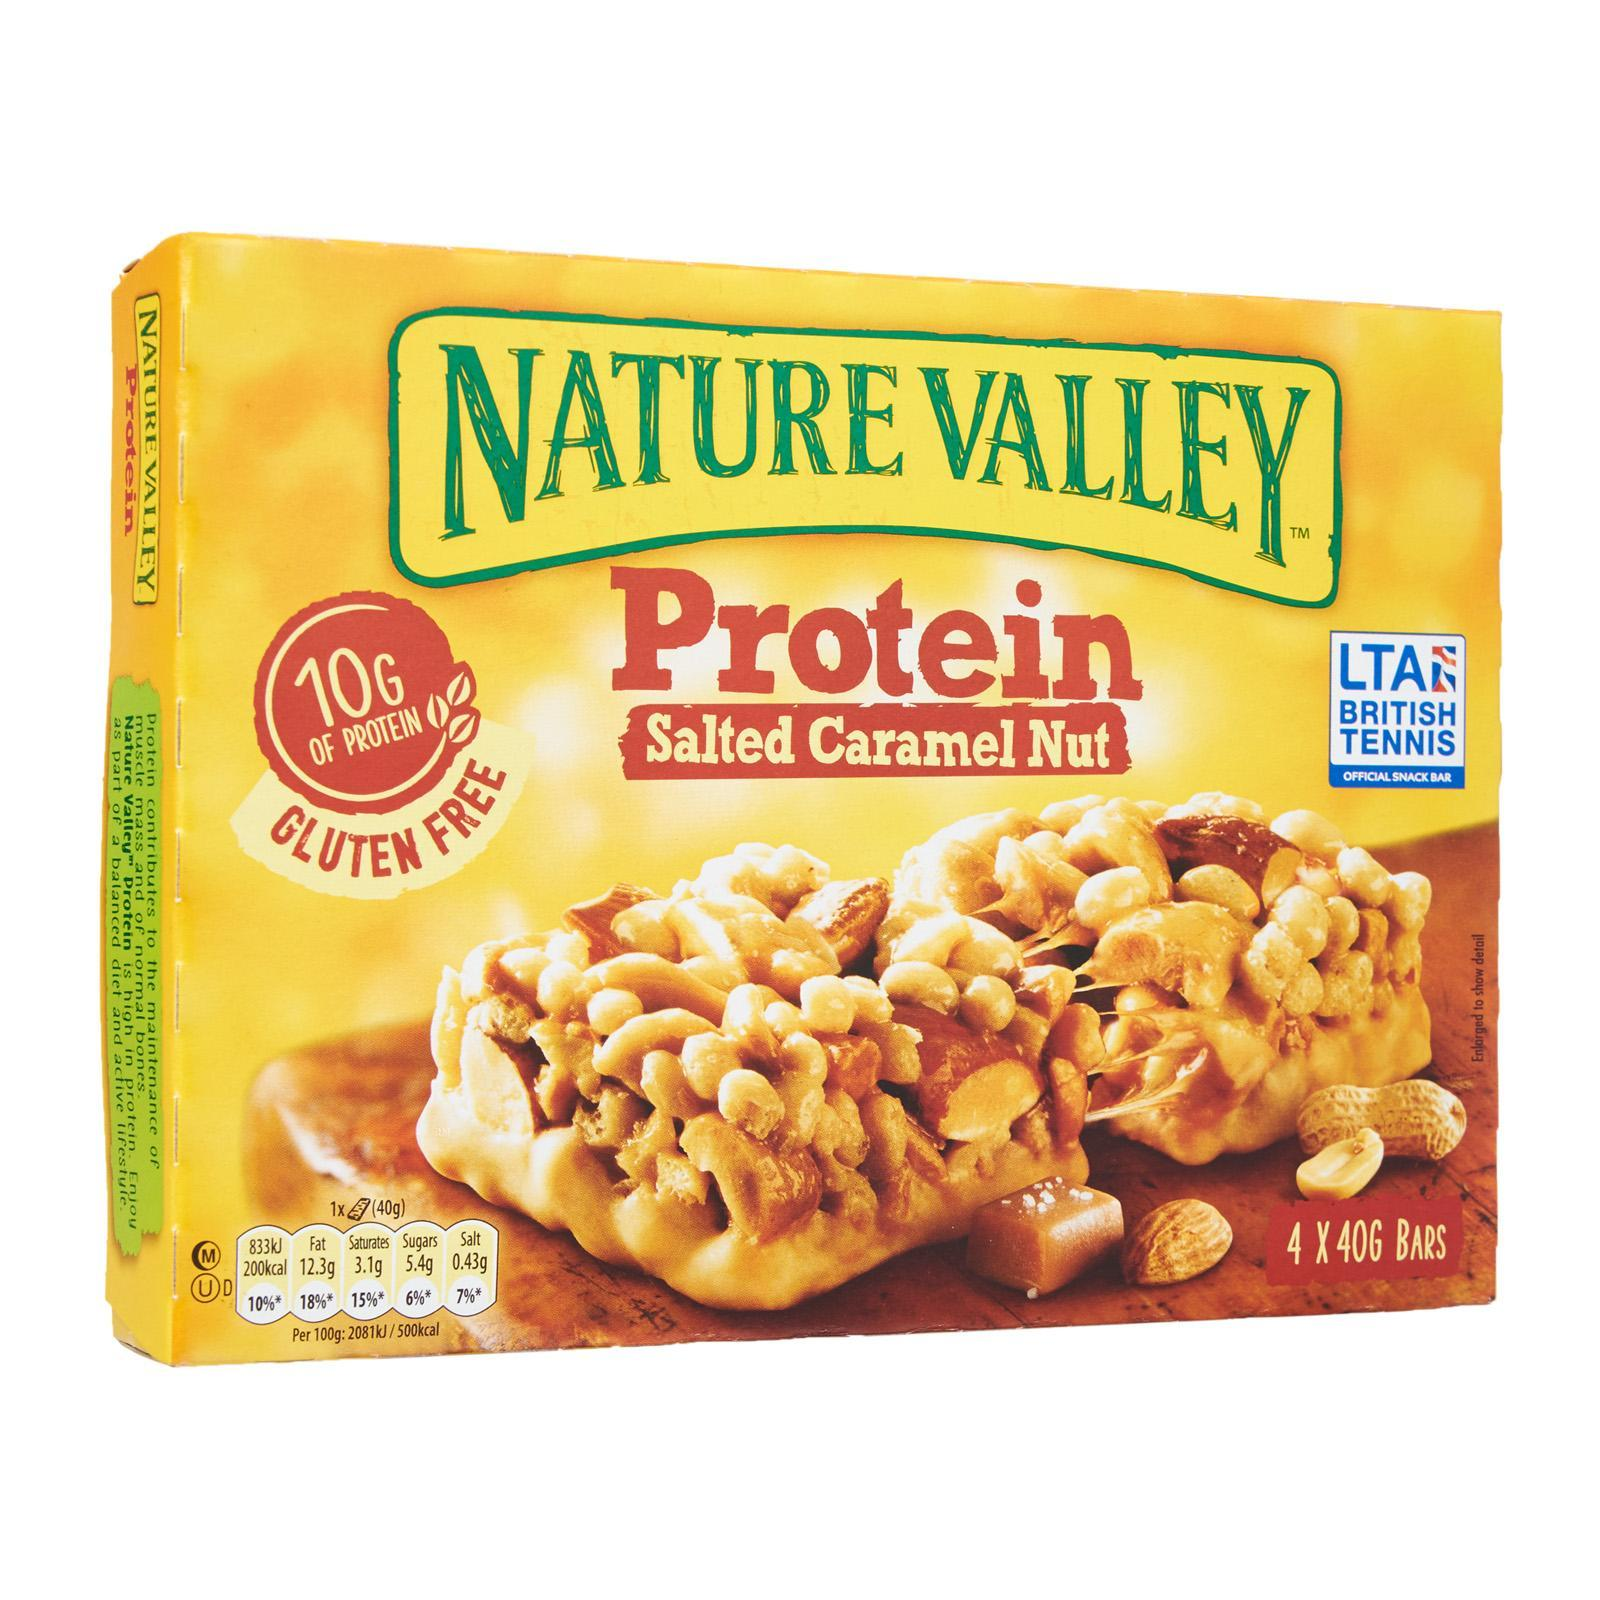 Nature Valley Gluten Free Protein Salted Caramel Nut Chewy Bars By Redmart.